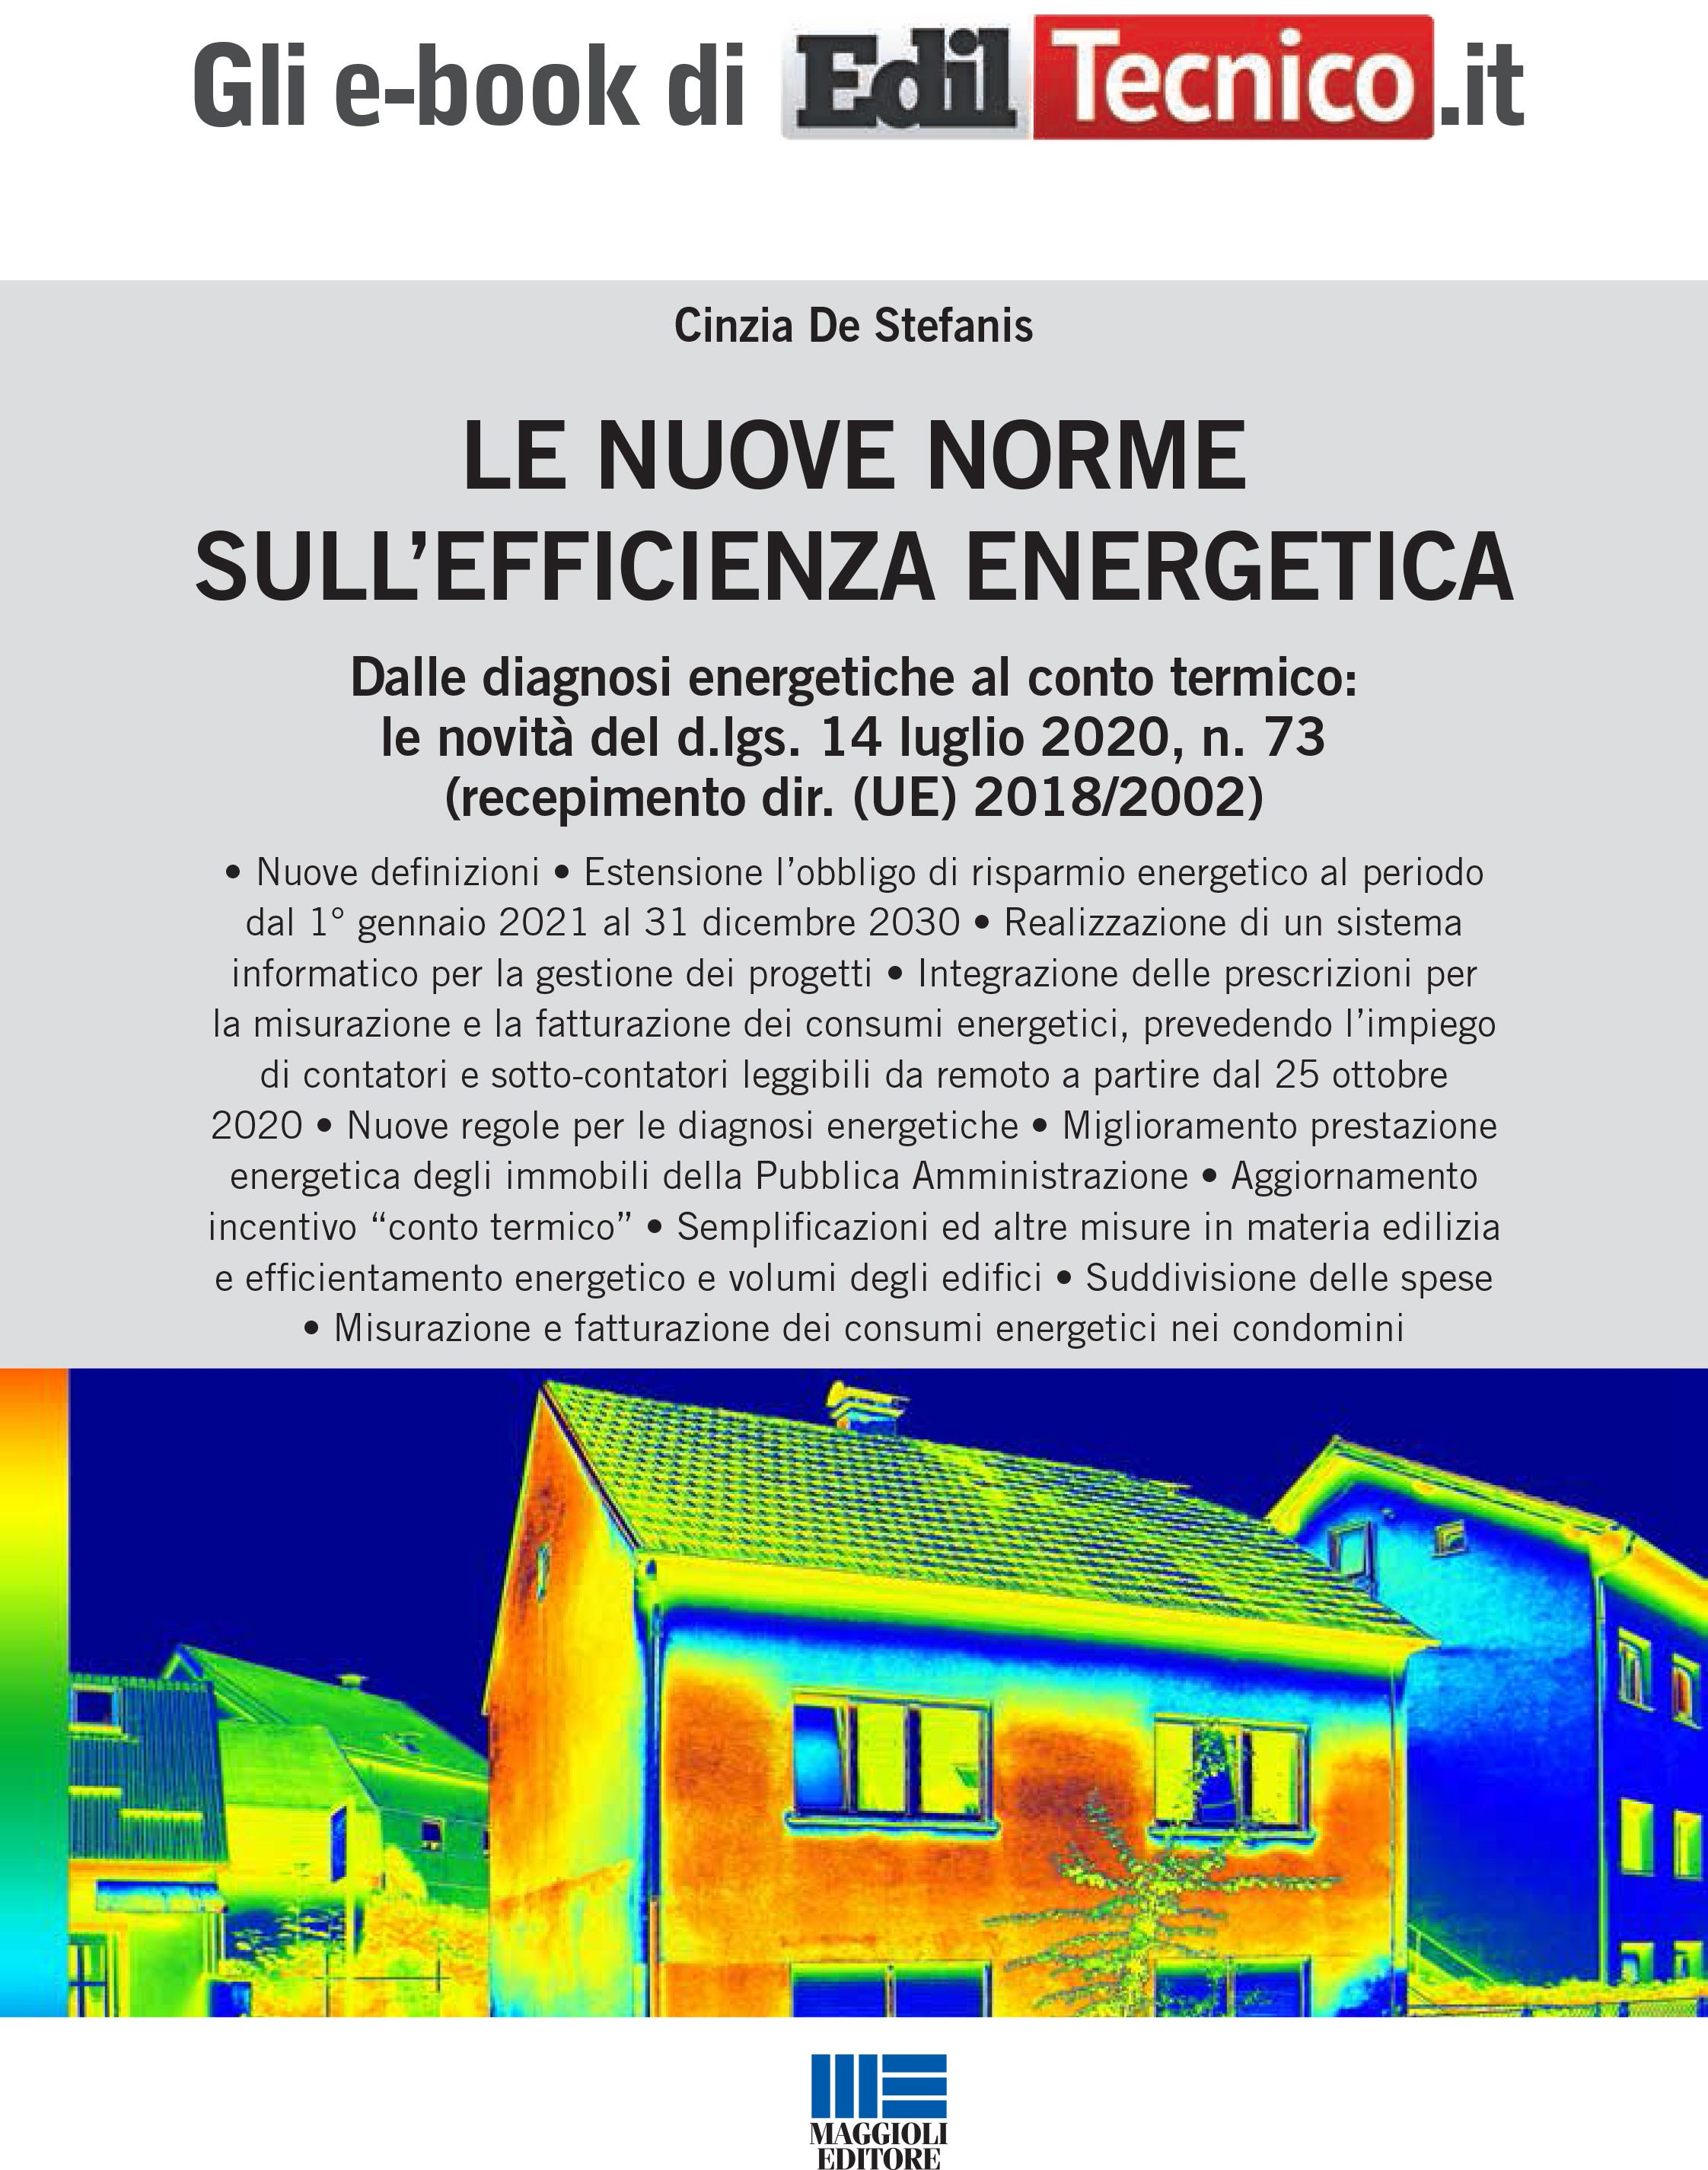 LE NUOVE NORME SULL'EFFICIENZA ENERGETICA - eBook